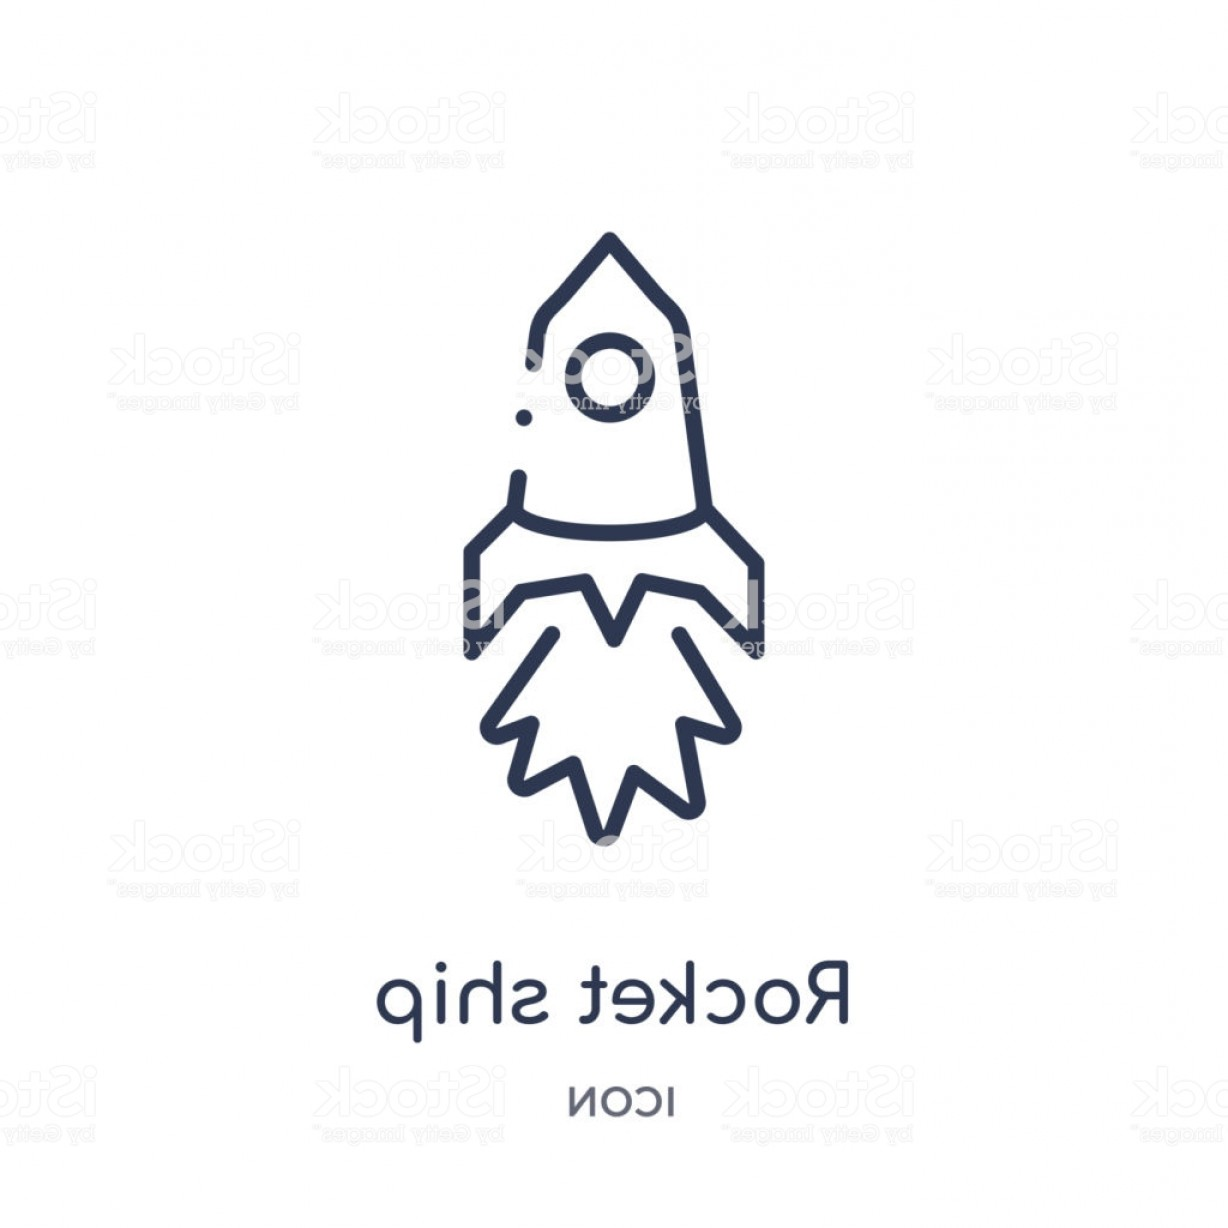 Rocket Ship Vector: Linear Rocket Ship Icon From Astronomy Outline Collection Thin Line Rocket Ship Gm